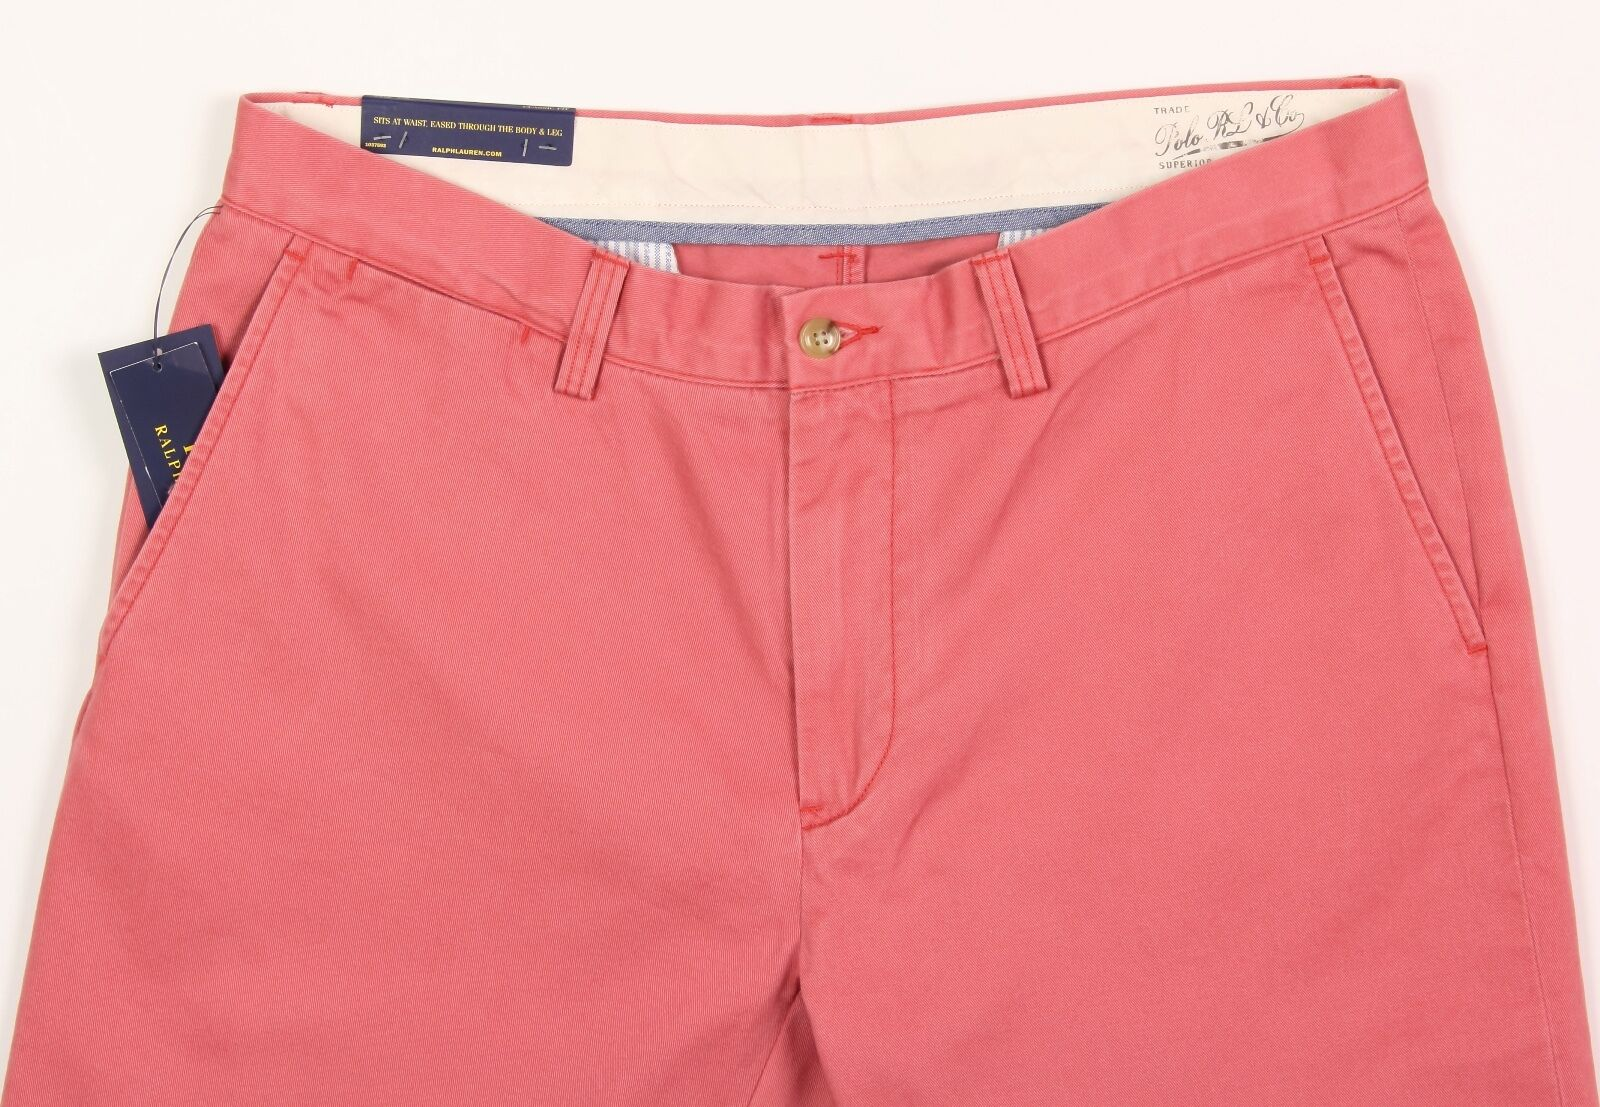 Men's POLO RALPH LAUREN Pink Red Cotton Pants 38x32 38 NEW NWT Classic Fit